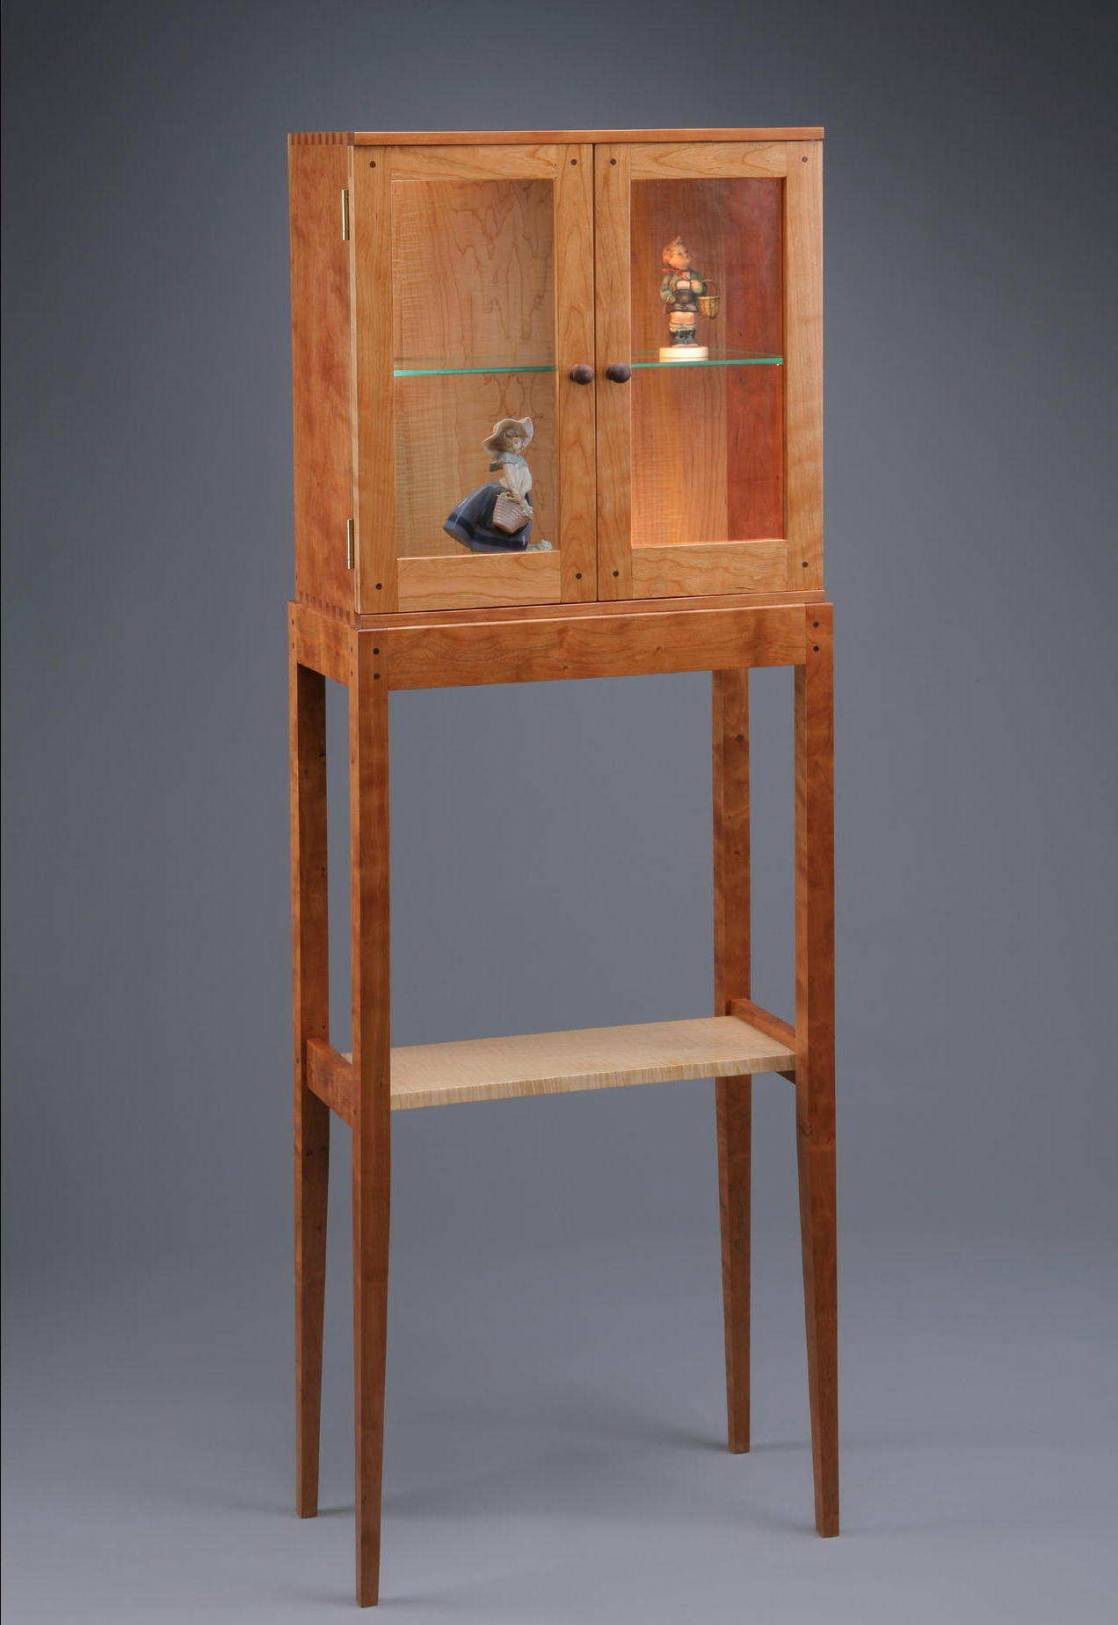 Tom Dumke To Display Crafted Wood Furniture At Under The